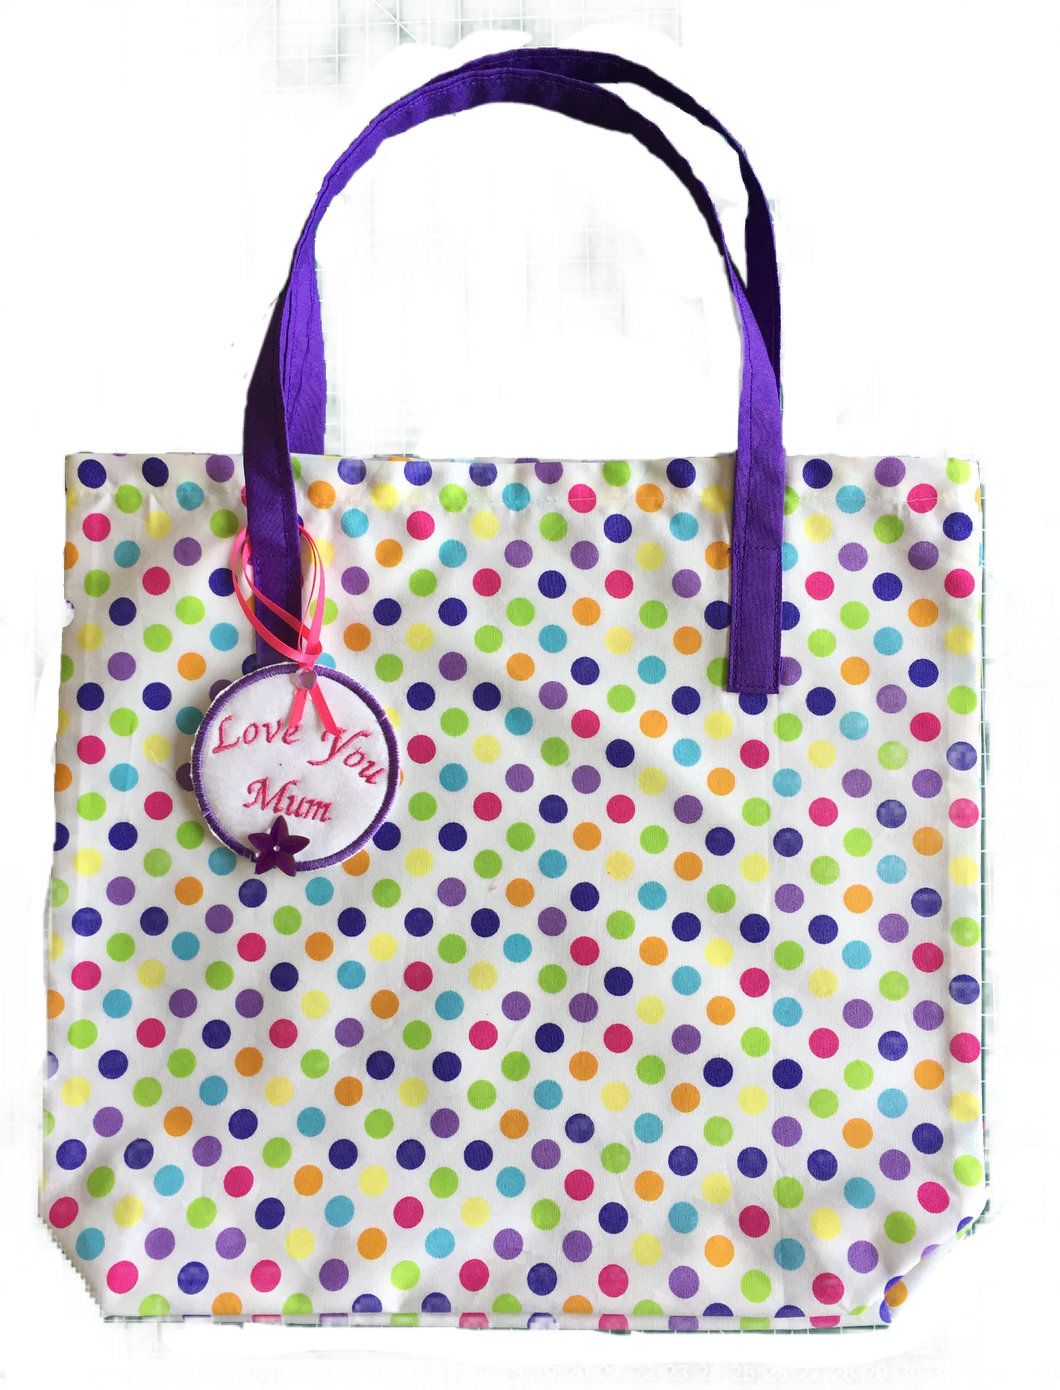 Gift Bag spotted (27x29cm)